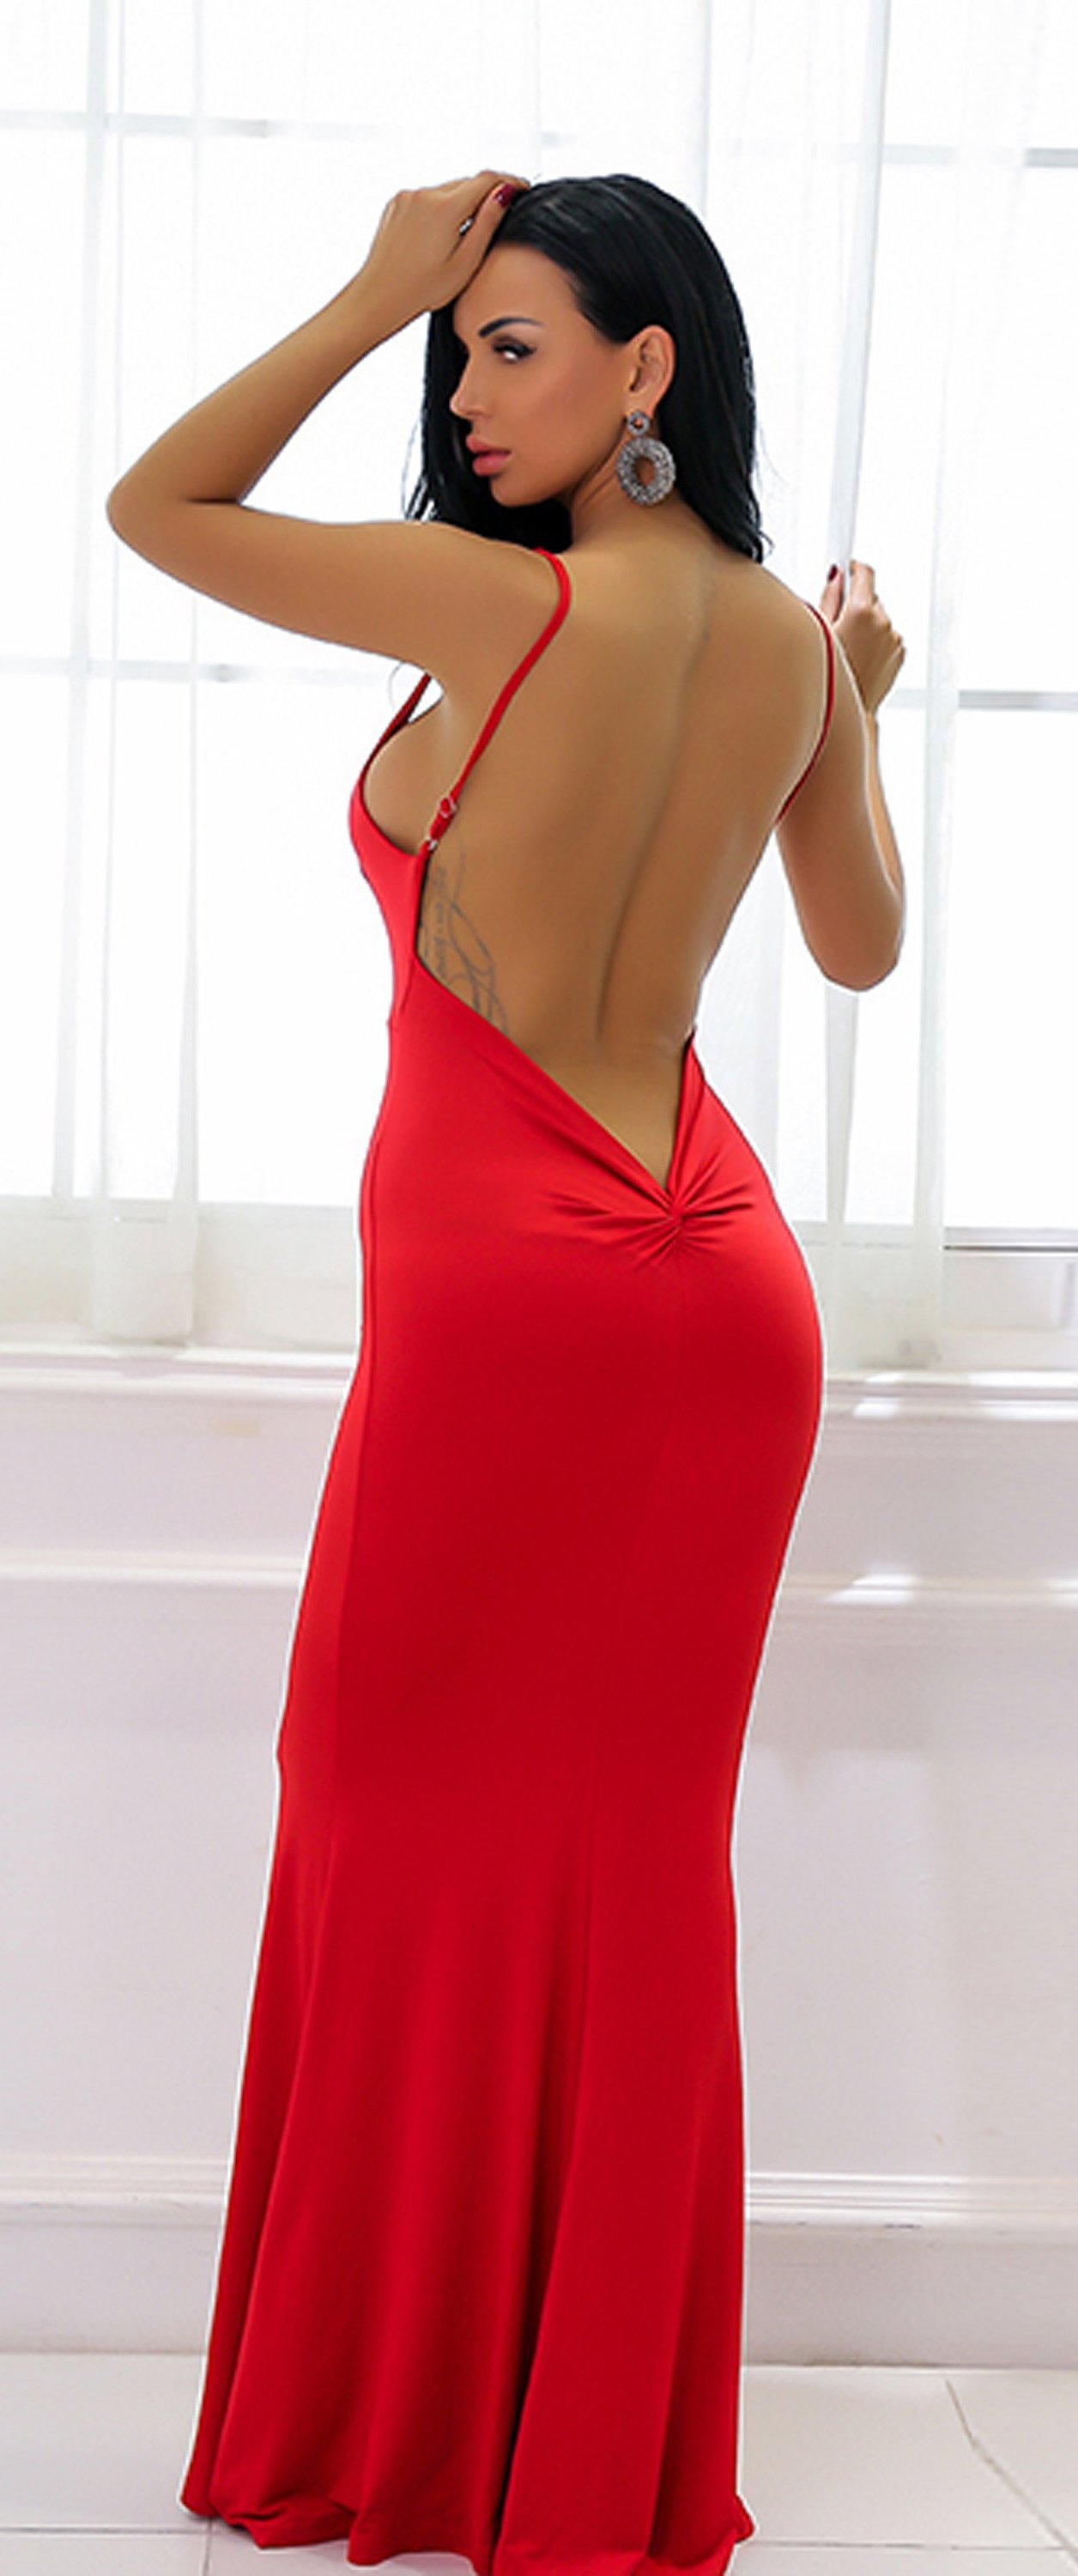 6bd35204bb9 Hot Red Tight Long Prom Dresses - Low Cut Ruched Backless Deep V Neck Plunge  Mermaid Gown Simple Maxi Dress for Graduation Homecoming Cocktail Evening  Party ...